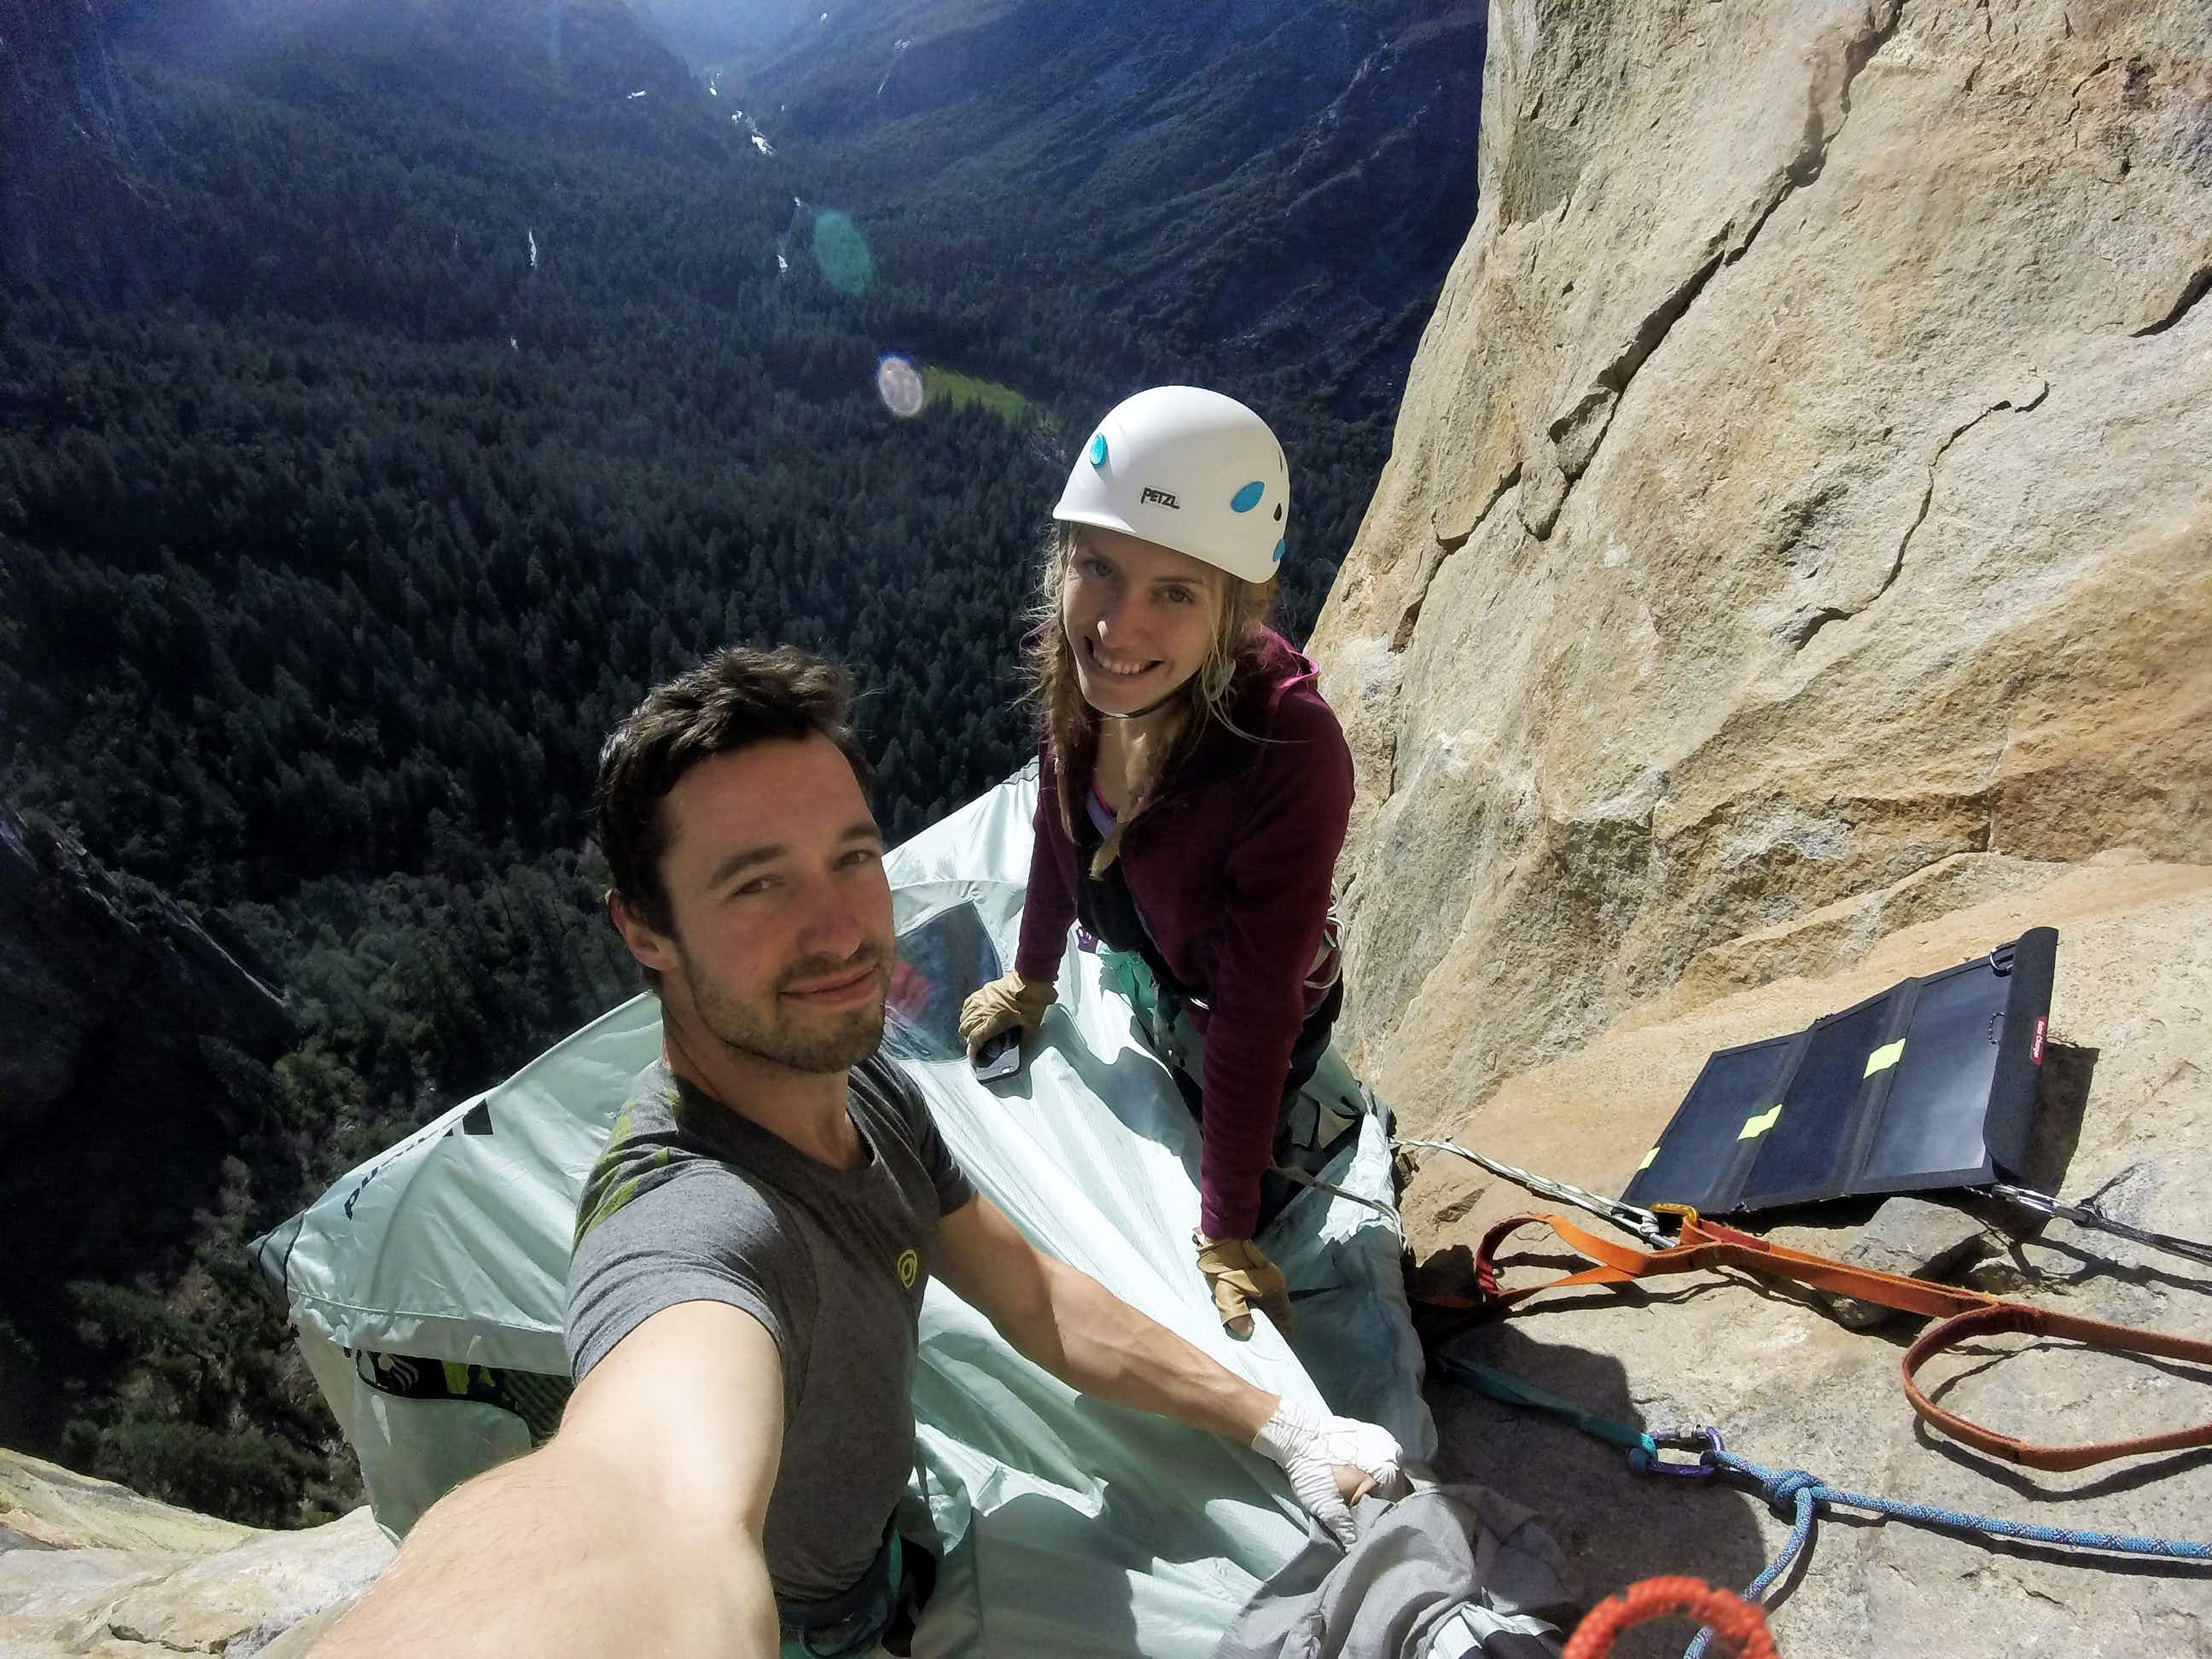 YouTuber and his girlfriend on how they conquered the biggest overhanging wall in North America